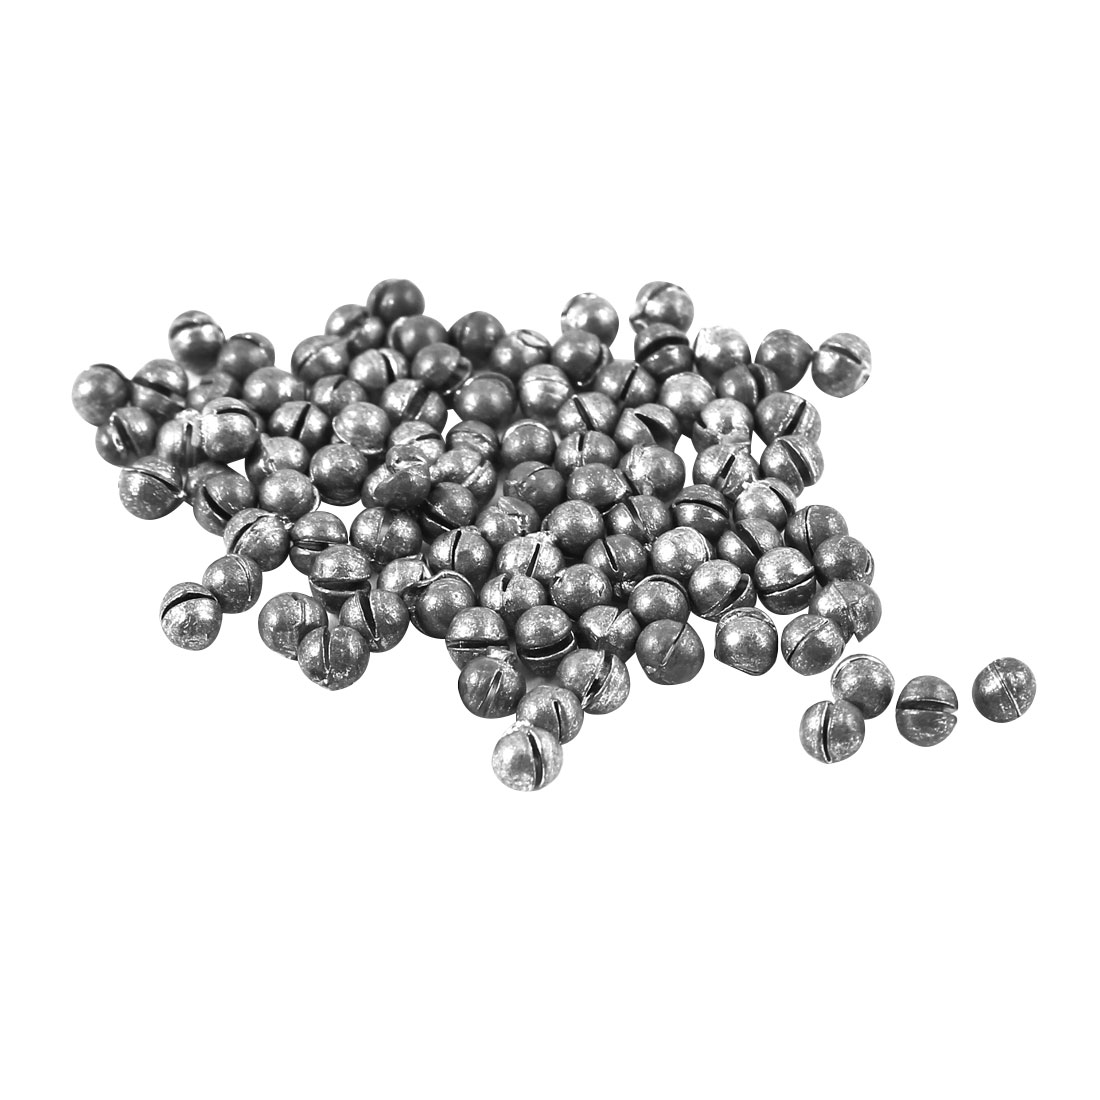 100pcs 3mm Dia Round Shaped Reuseable Lead Split Shots Sinkers Fish Tackle Dark Gray 0.25g Per Piece